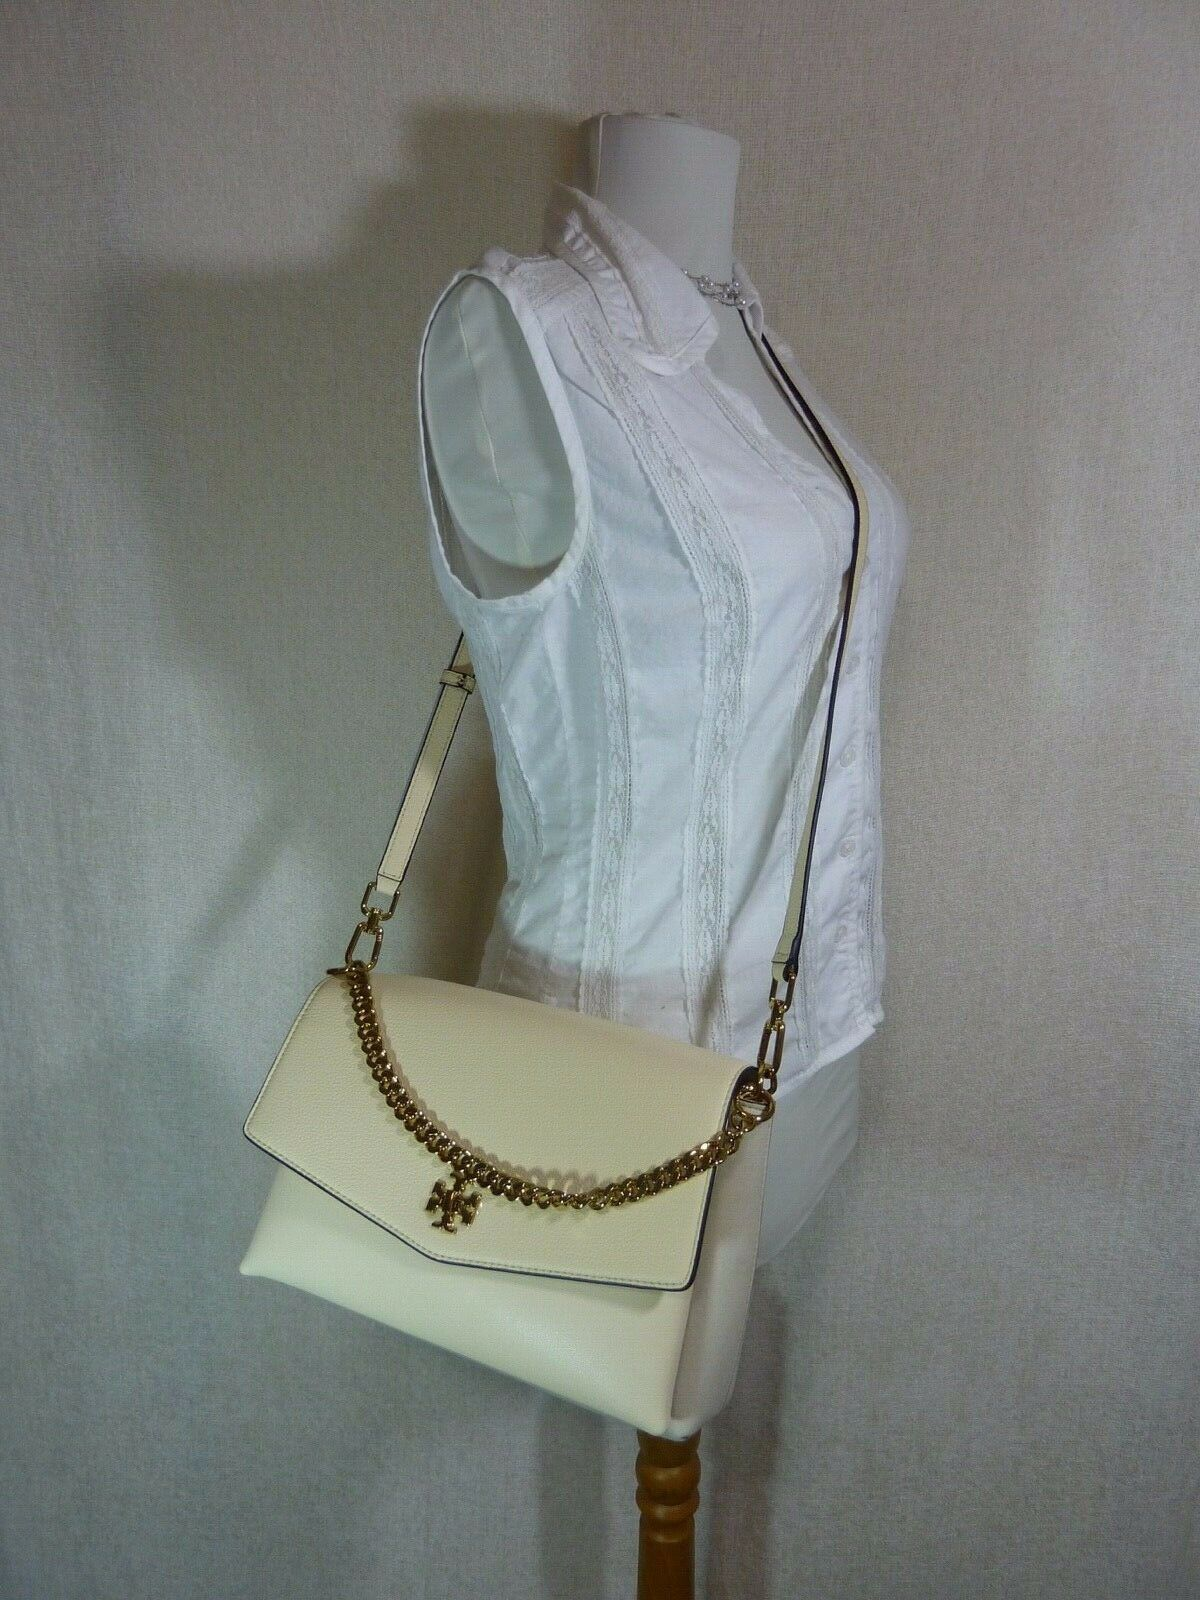 NWT Tory Burch New Cream KIRA Mixed-material Double-strap Shoulder Bag $528 image 10